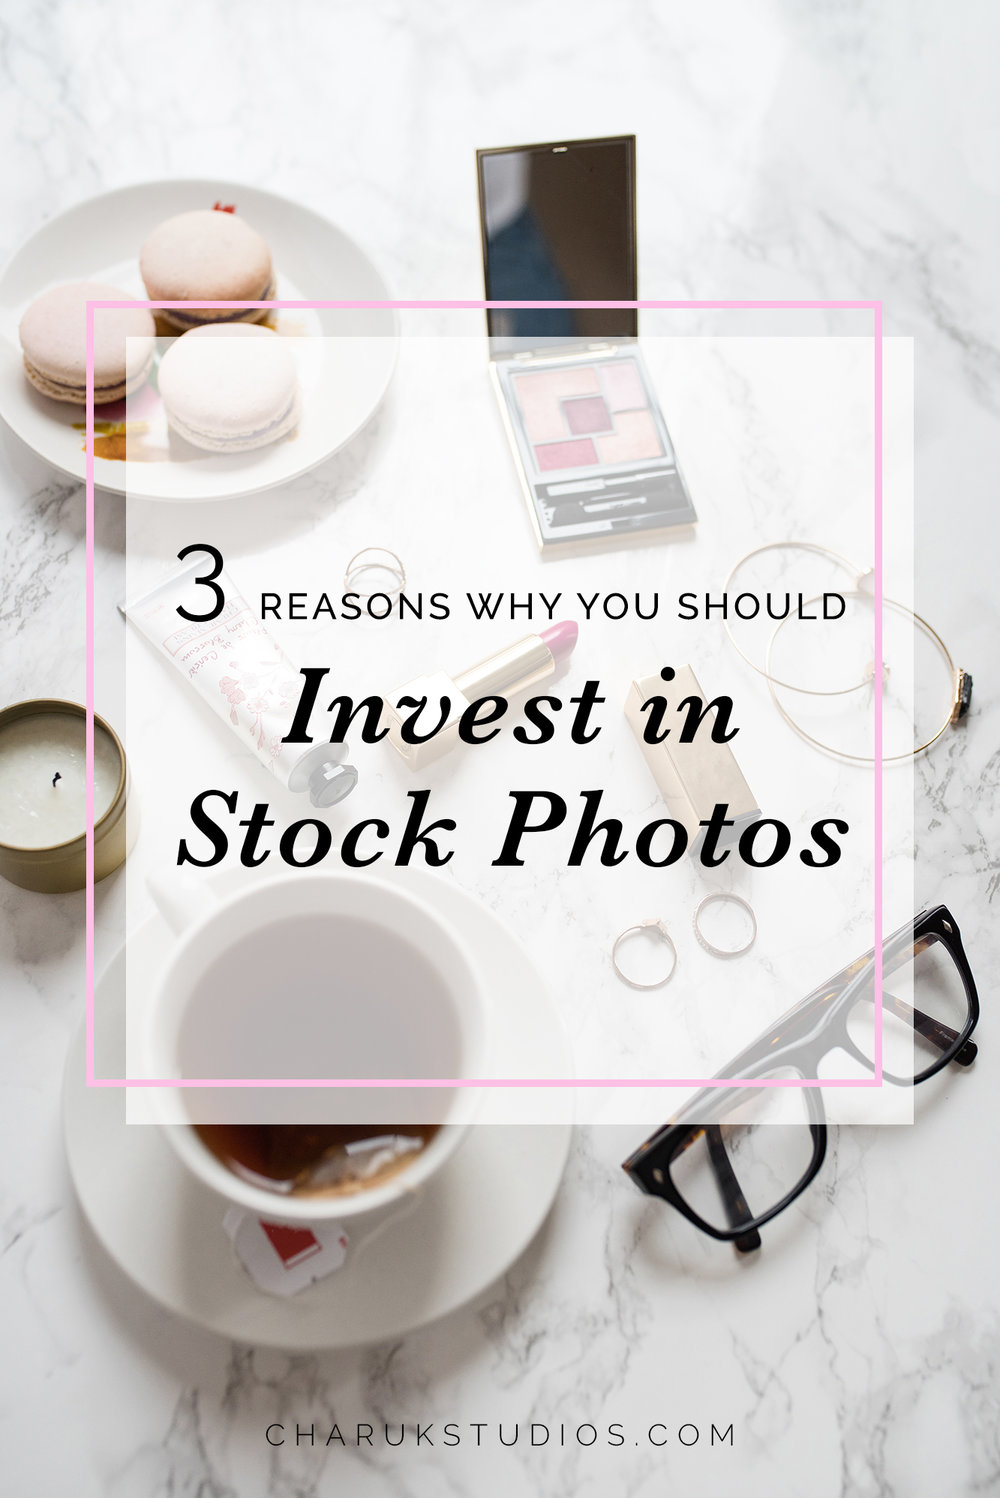 3 Reasons Why You Should Invest in Stock Photos by Charuk Studios